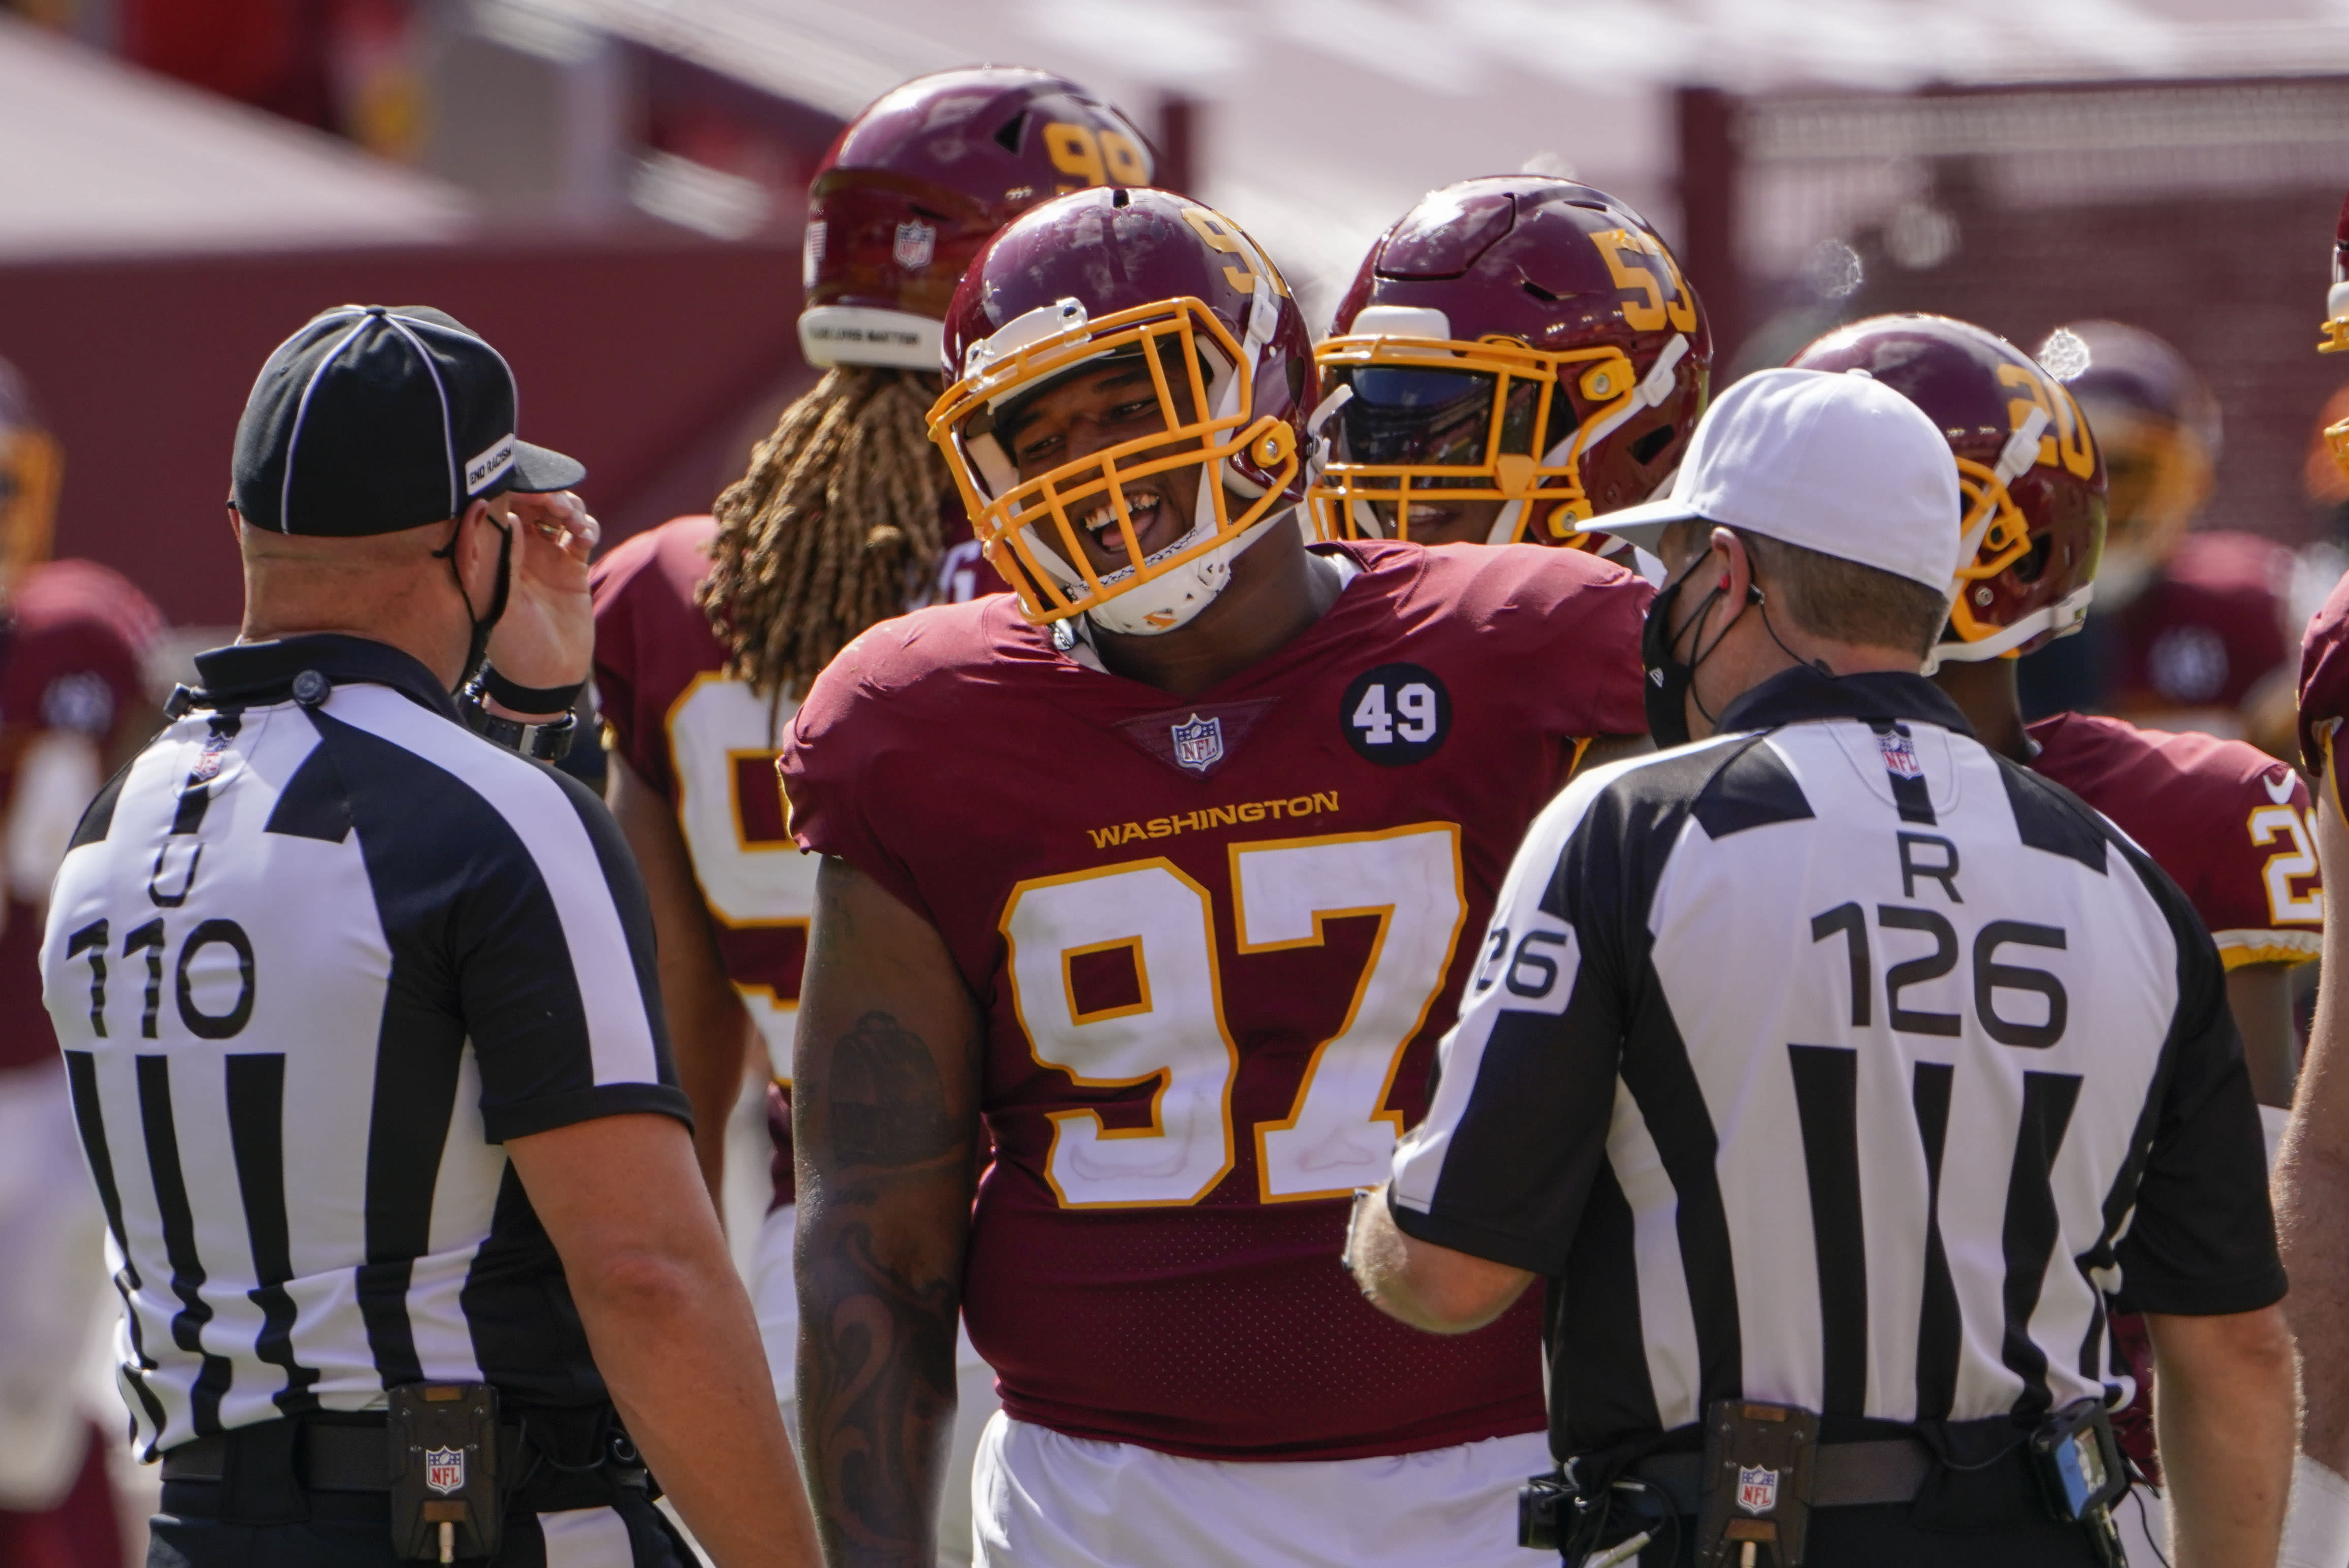 Washington Football Team defensive tackle Tim Settle (97) smiles while talking with umpire Tab Slaughter (110) and referee Brad Rodgers (126) during a timeout in the second half of an NFL football game against the Philadelphia Eagles, Sunday, Sept. 13, 2020, in Landover, Md. (AP Photo/Susan Walsh)